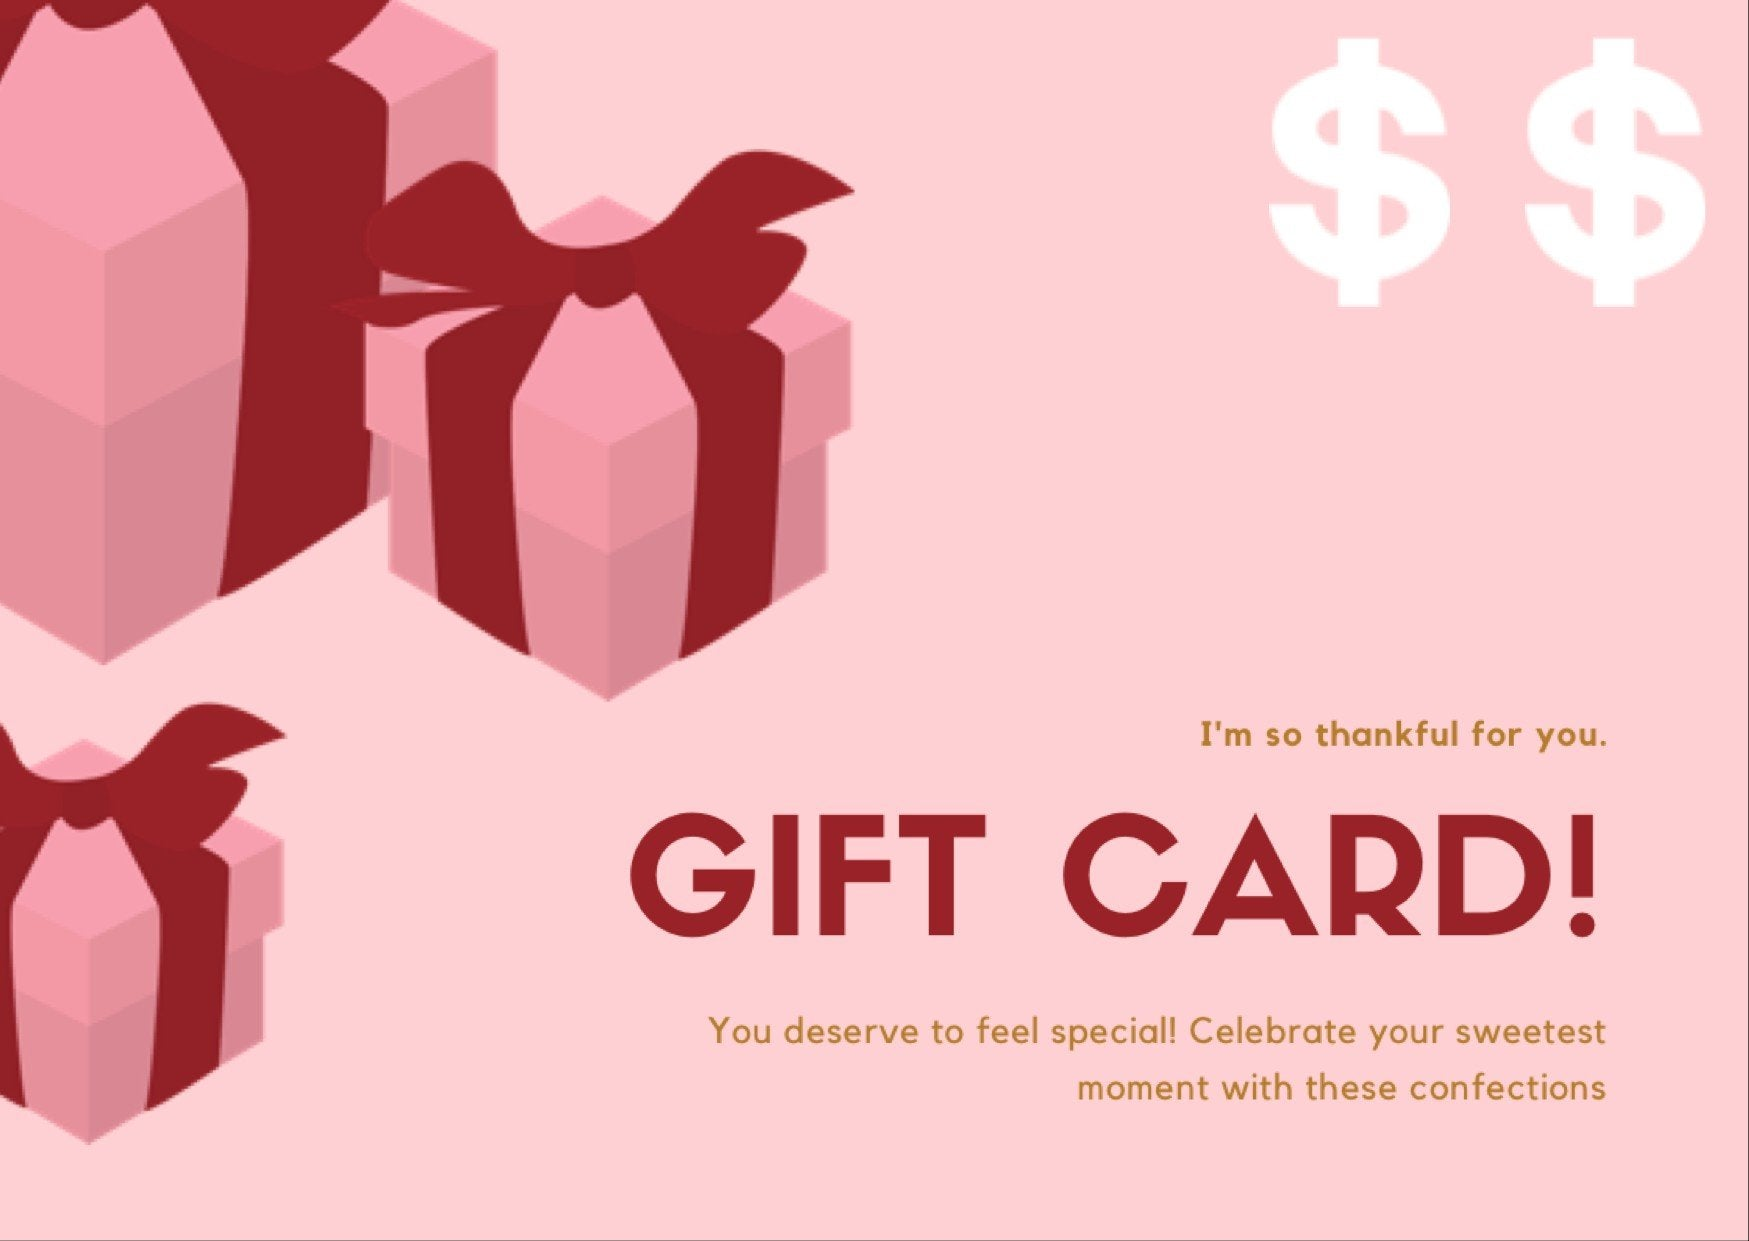 Gift Card Evelyn R. Cooke - Pastry Art